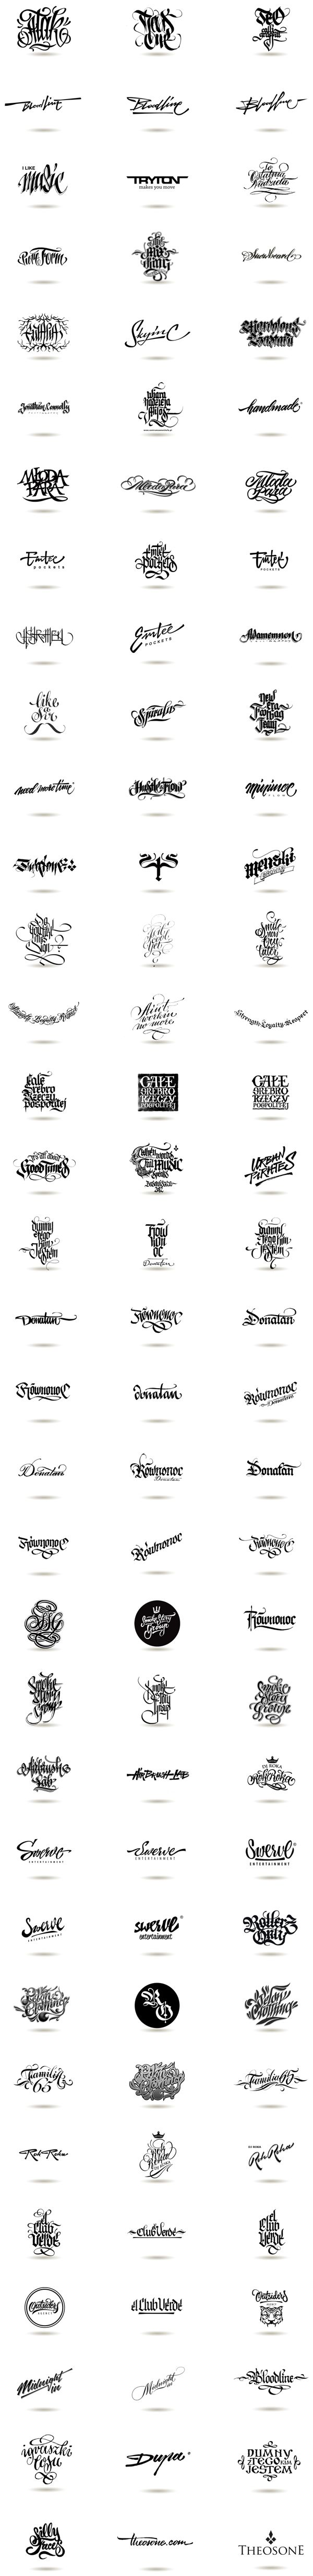 Calligraphic Logos by THEOSONE Adam Romuald Klodecki, via Behance. Pure awesomeness...